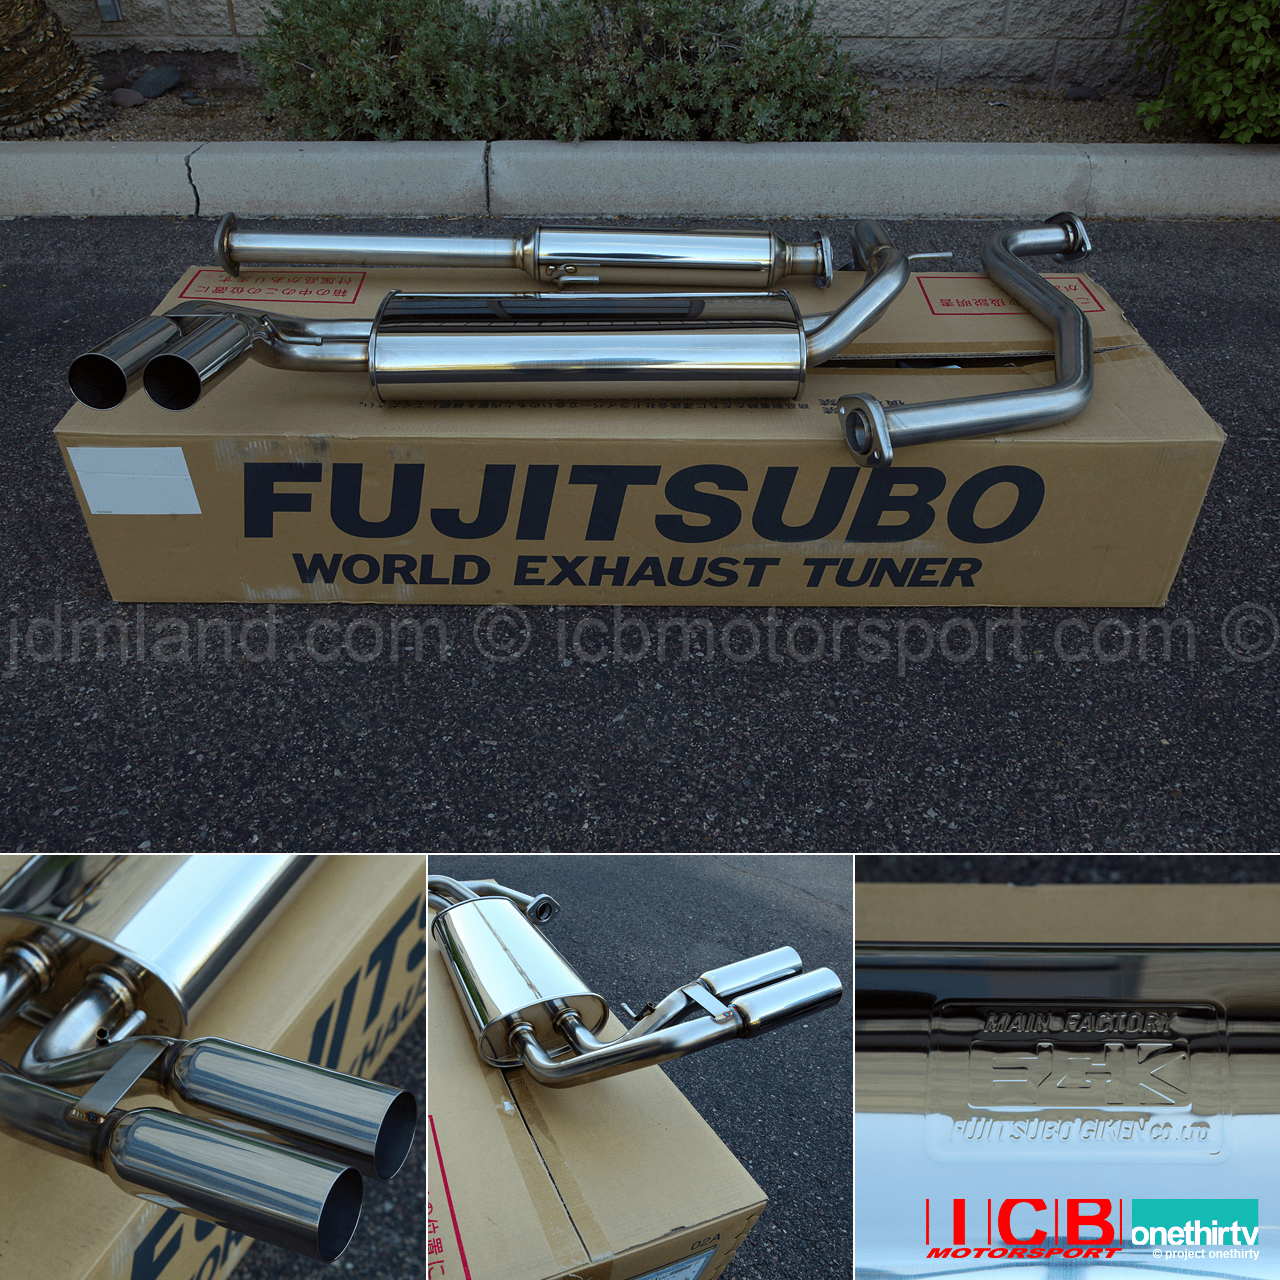 NEW Fujitsubo Legalis R Exhaust JDM CRX SiR B16A 1989-1991 Part:750-52433 Pre-Order